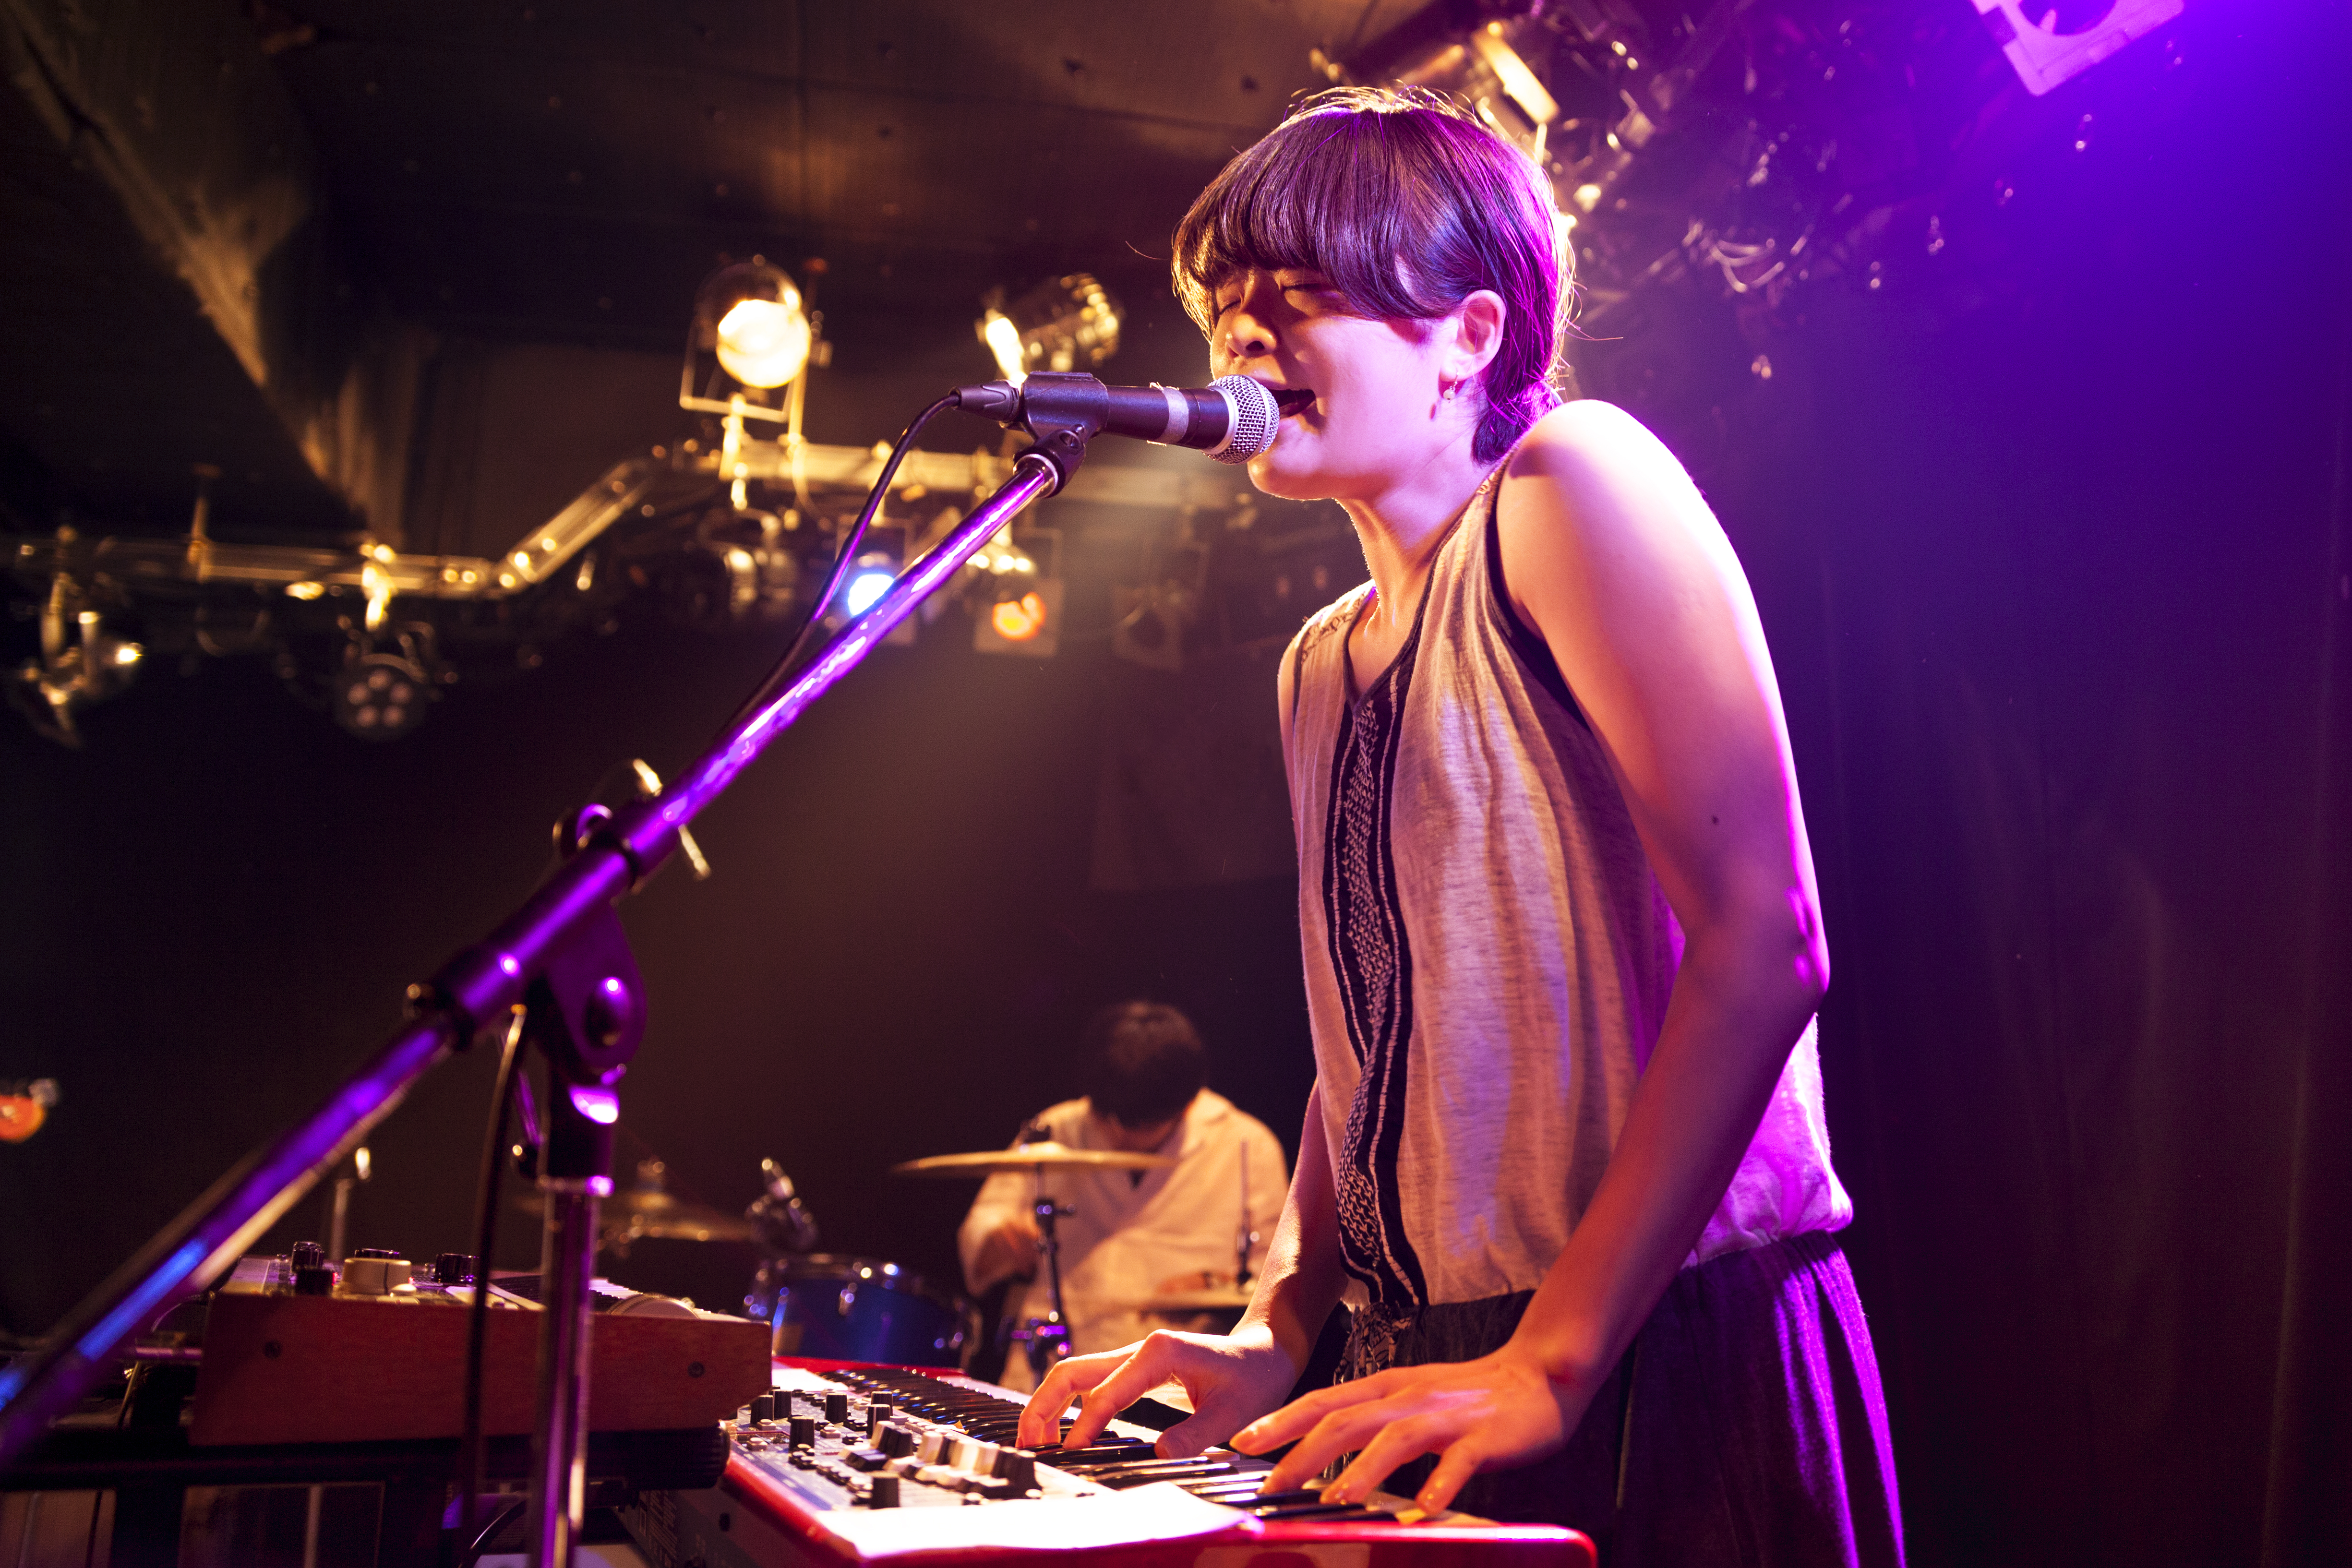 Woman plays keyboard live on stage and sings into microphone